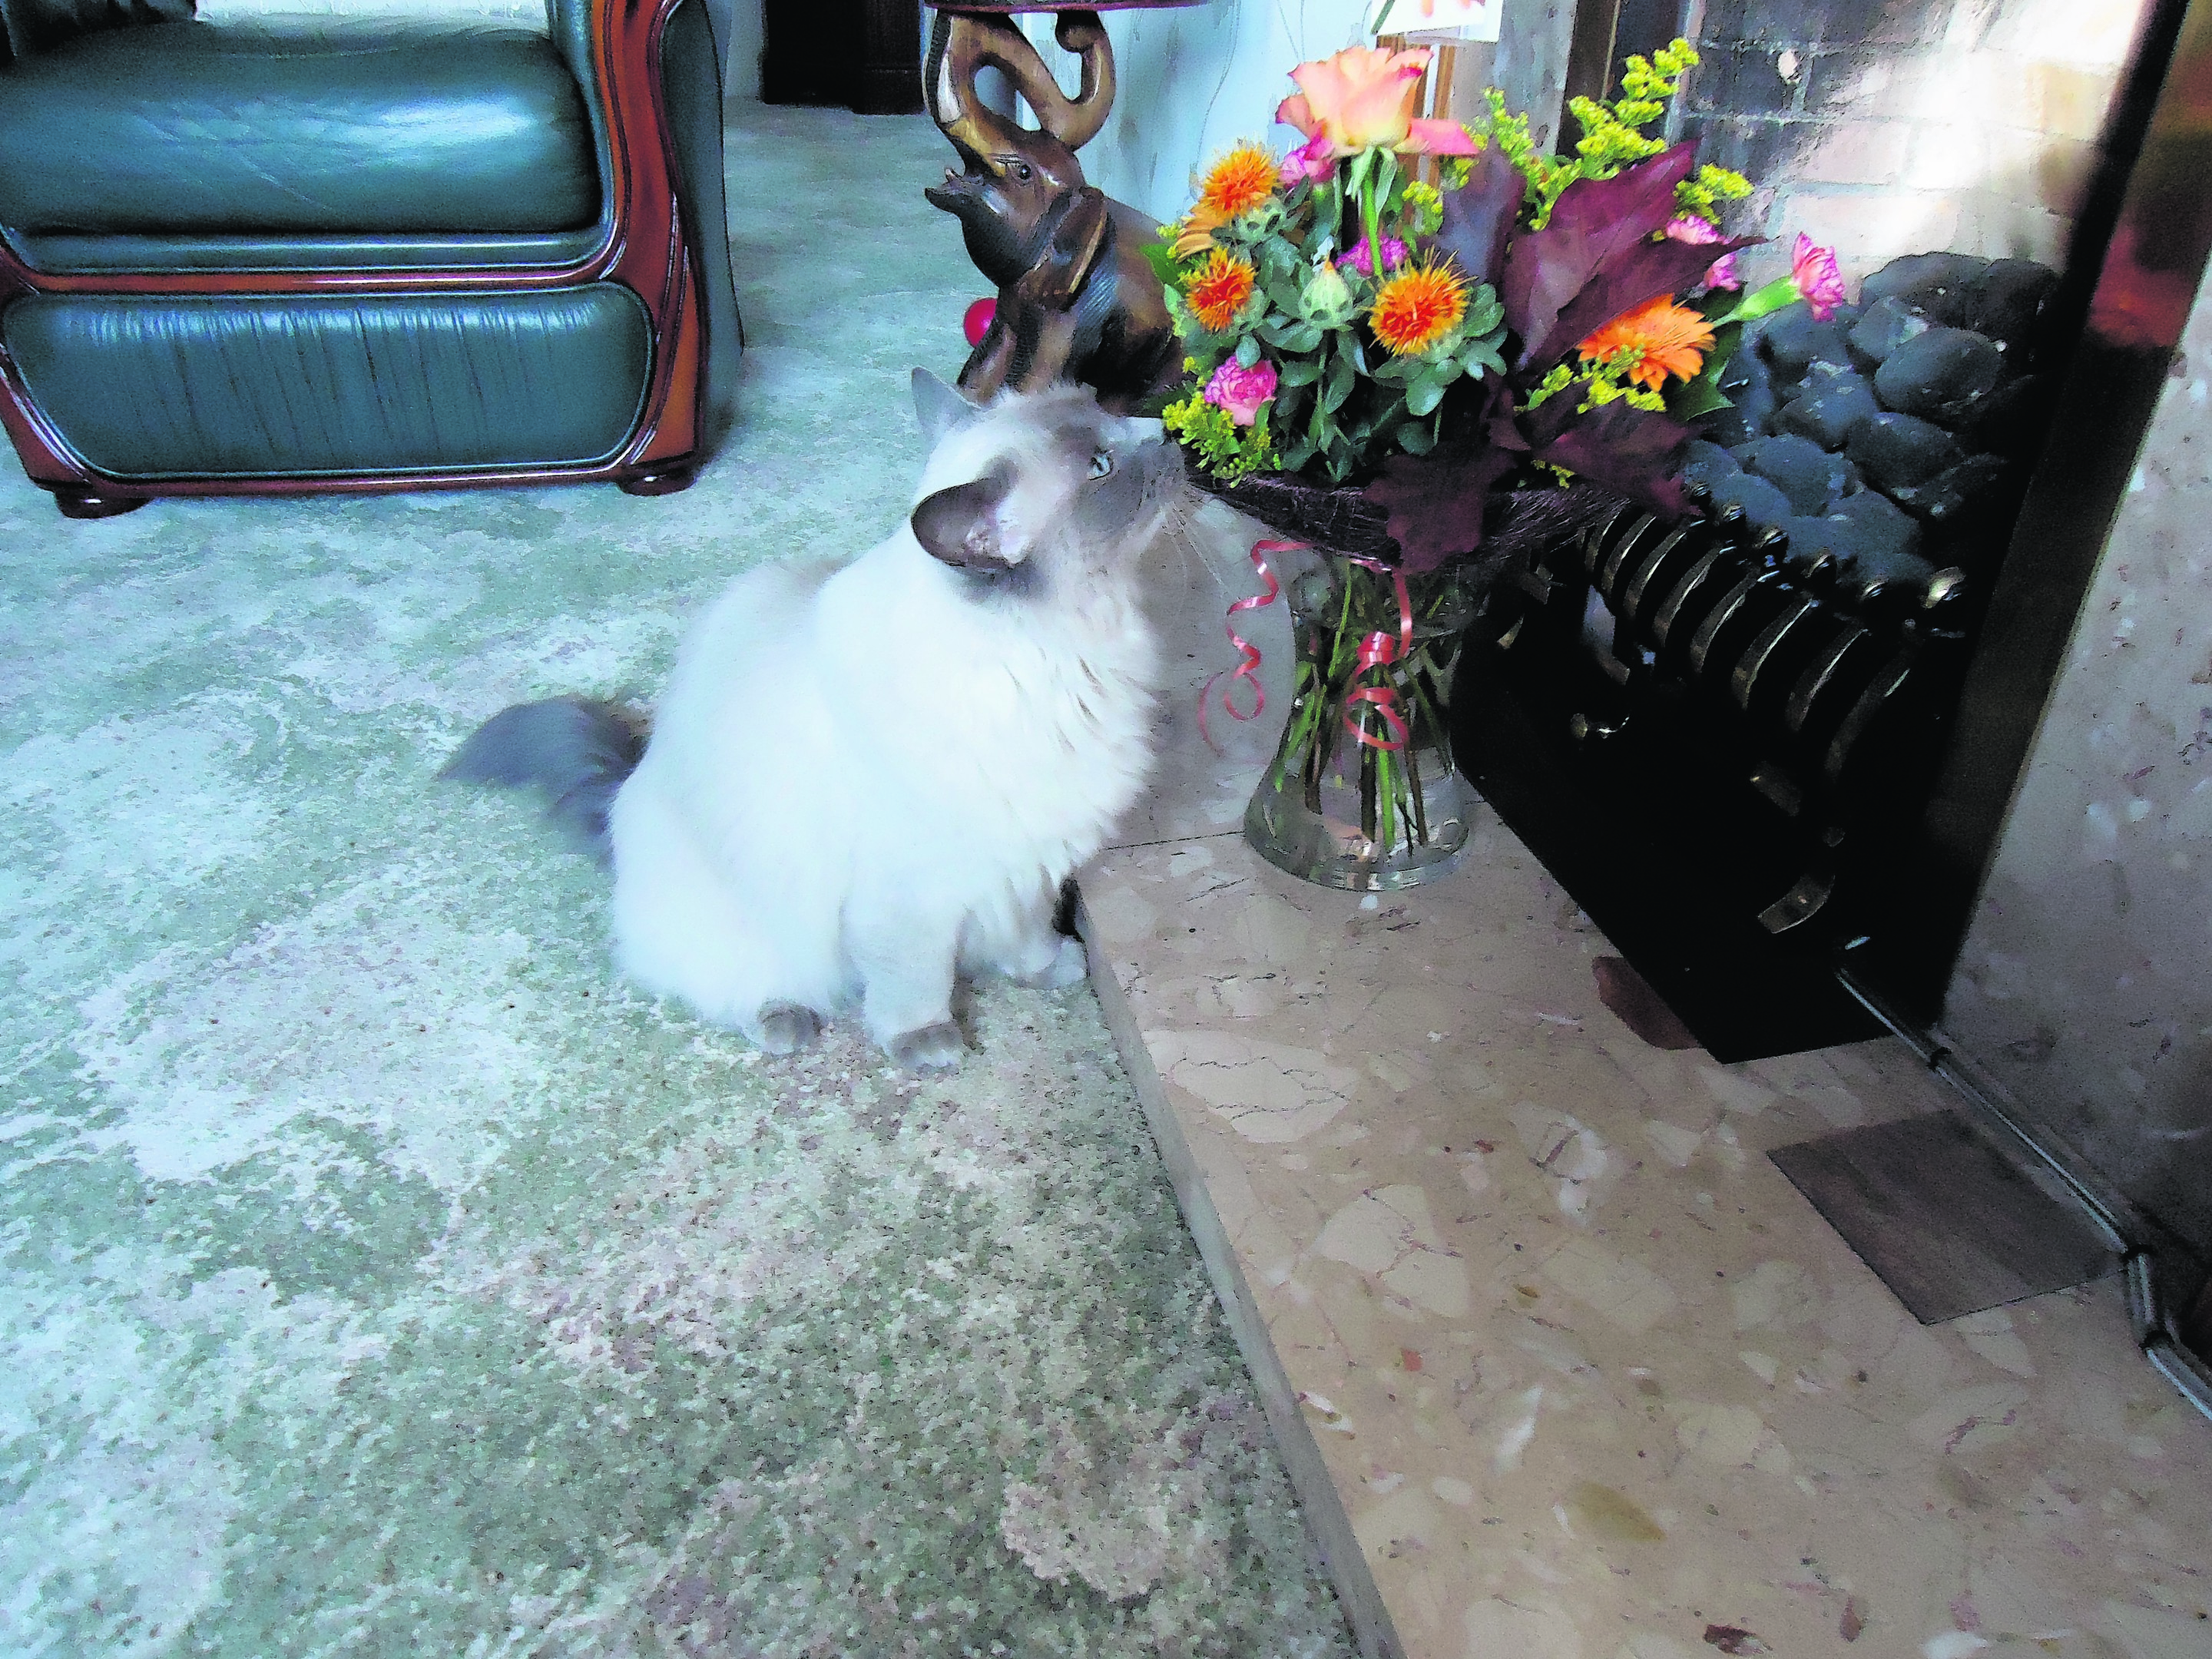 This is Panda Paws a ragdoll cat taking time to smell the flowers at her granny's house. She lives in Edinburgh with Gary Karen and Charlie Aitken.